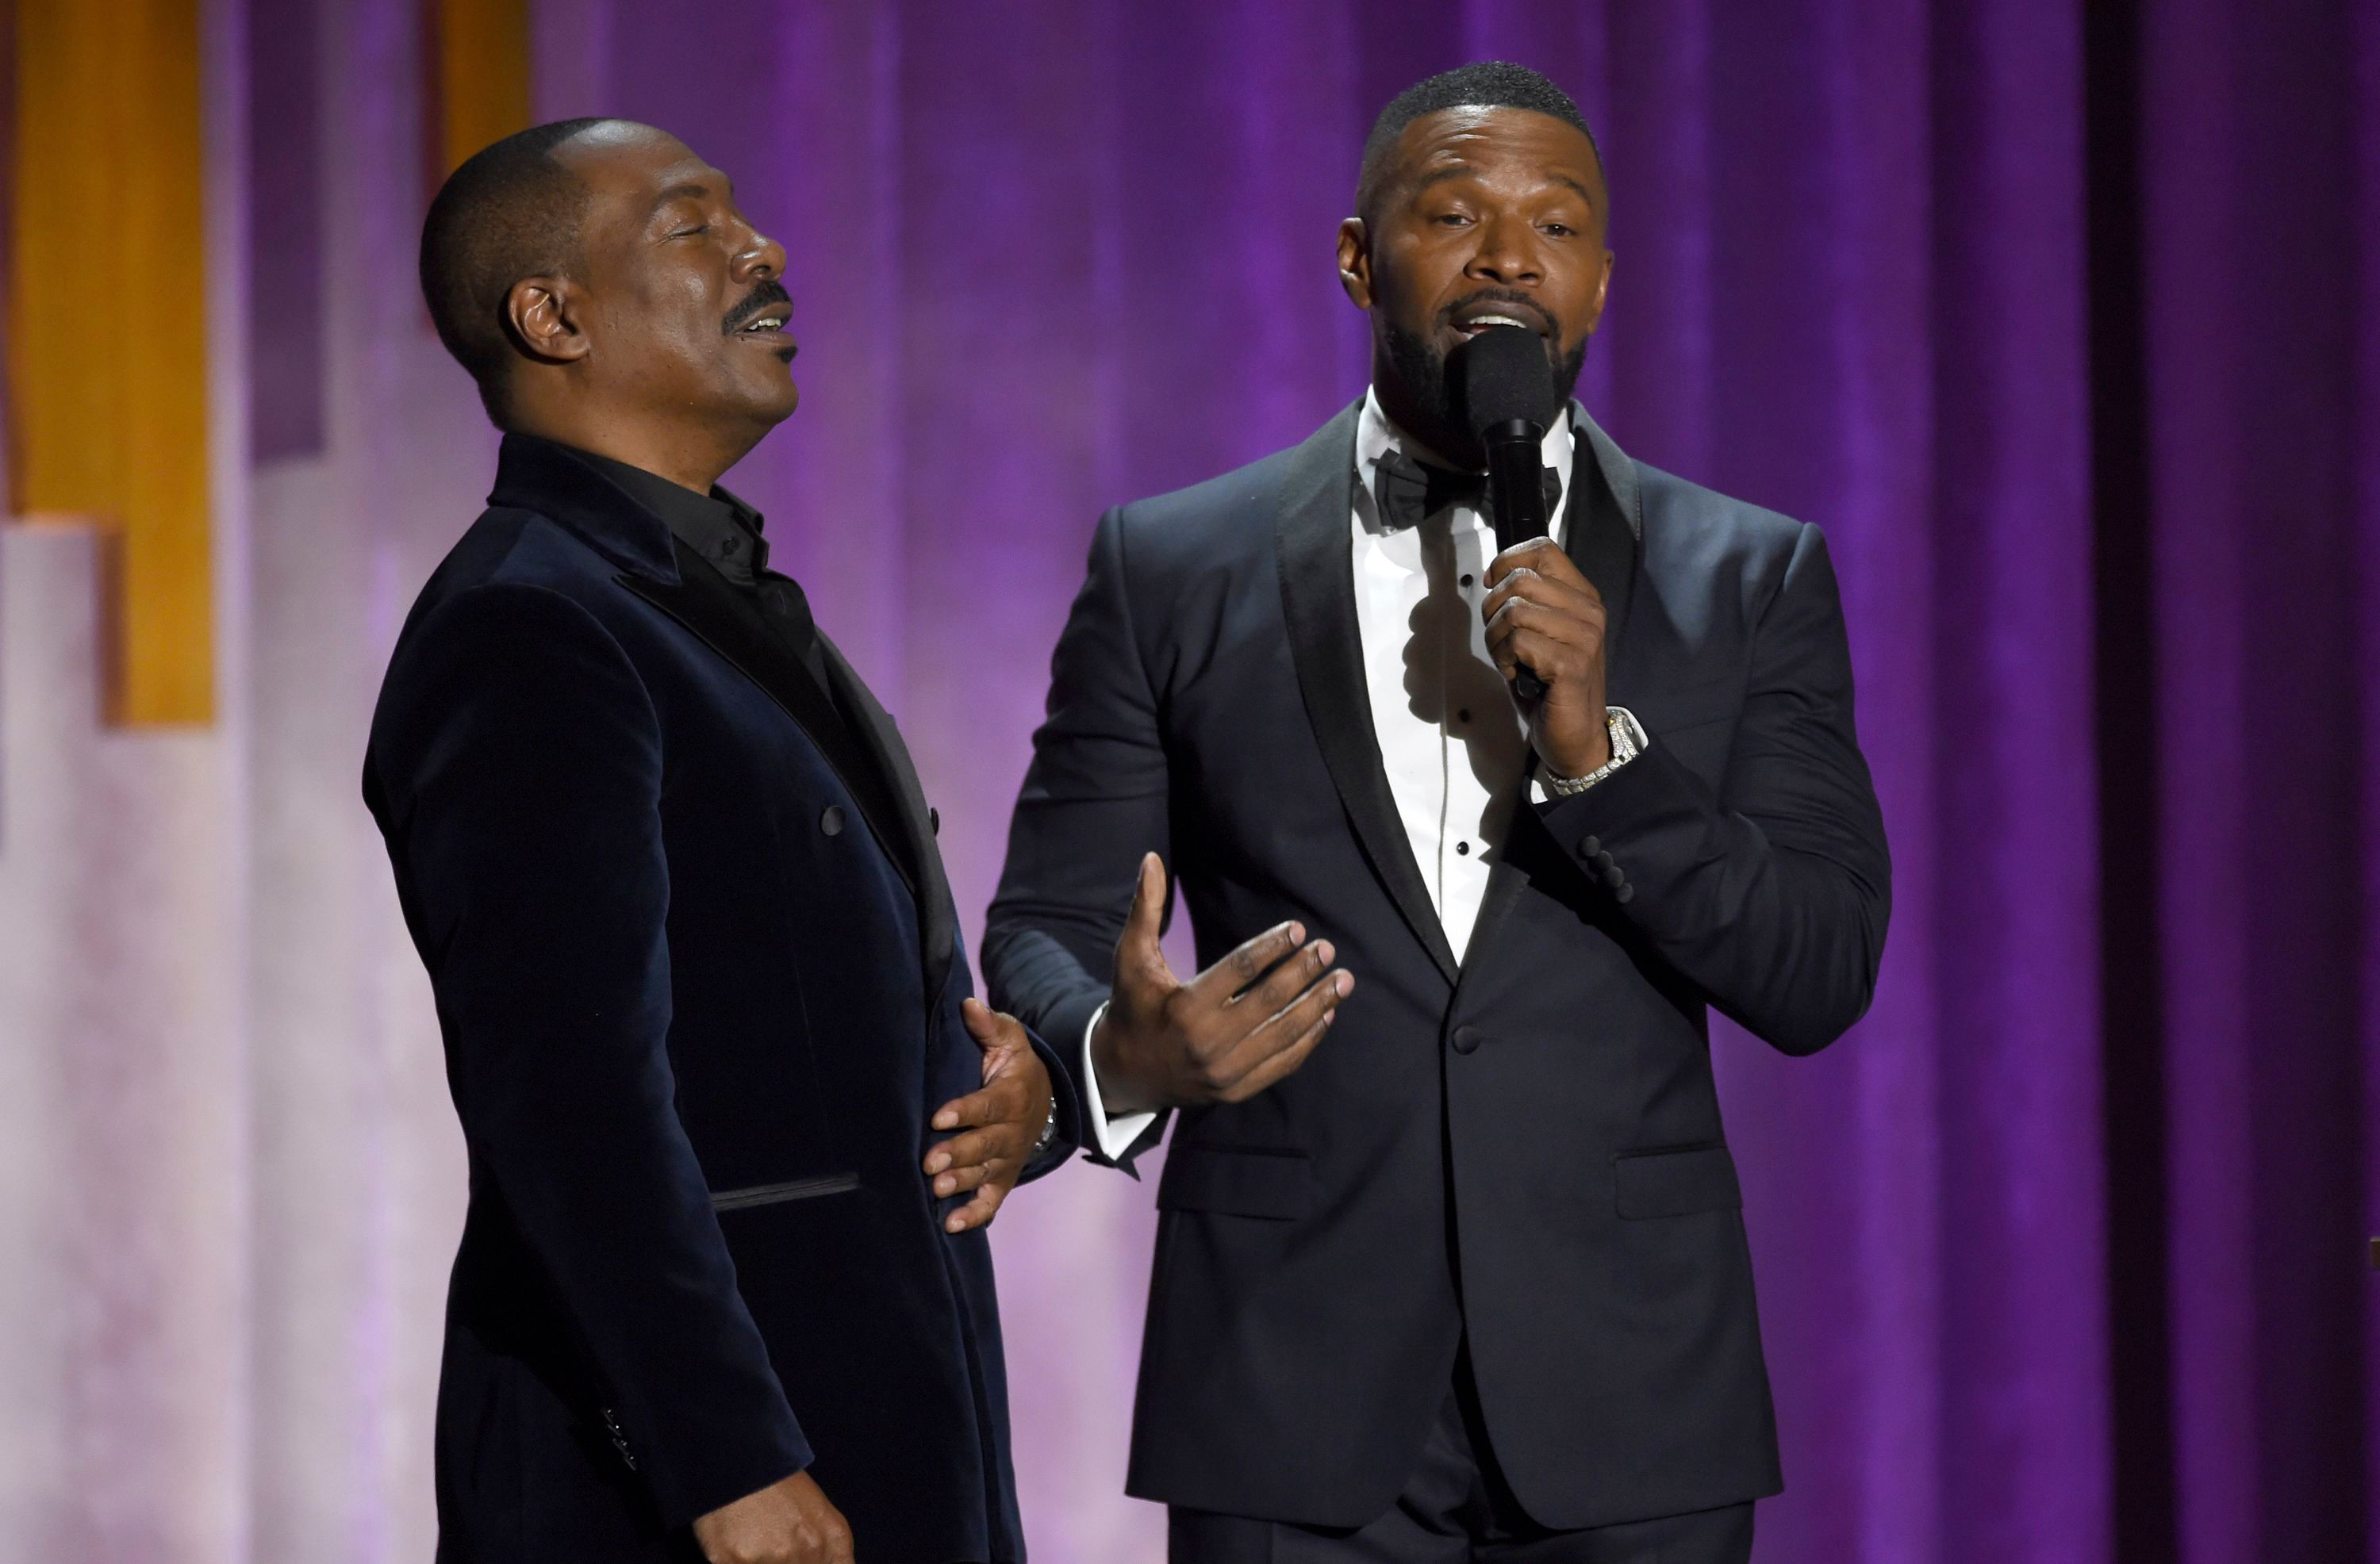 Eddie Murphy, Jamie Foxx. Eddie Murphy, left, and Jamie Foxx speak on stage at the Governors Awards, at the Dolby Ballroom in Los Angeles2019 Governors Awards - Show, Los Angeles, USA - 27 Oct 2019